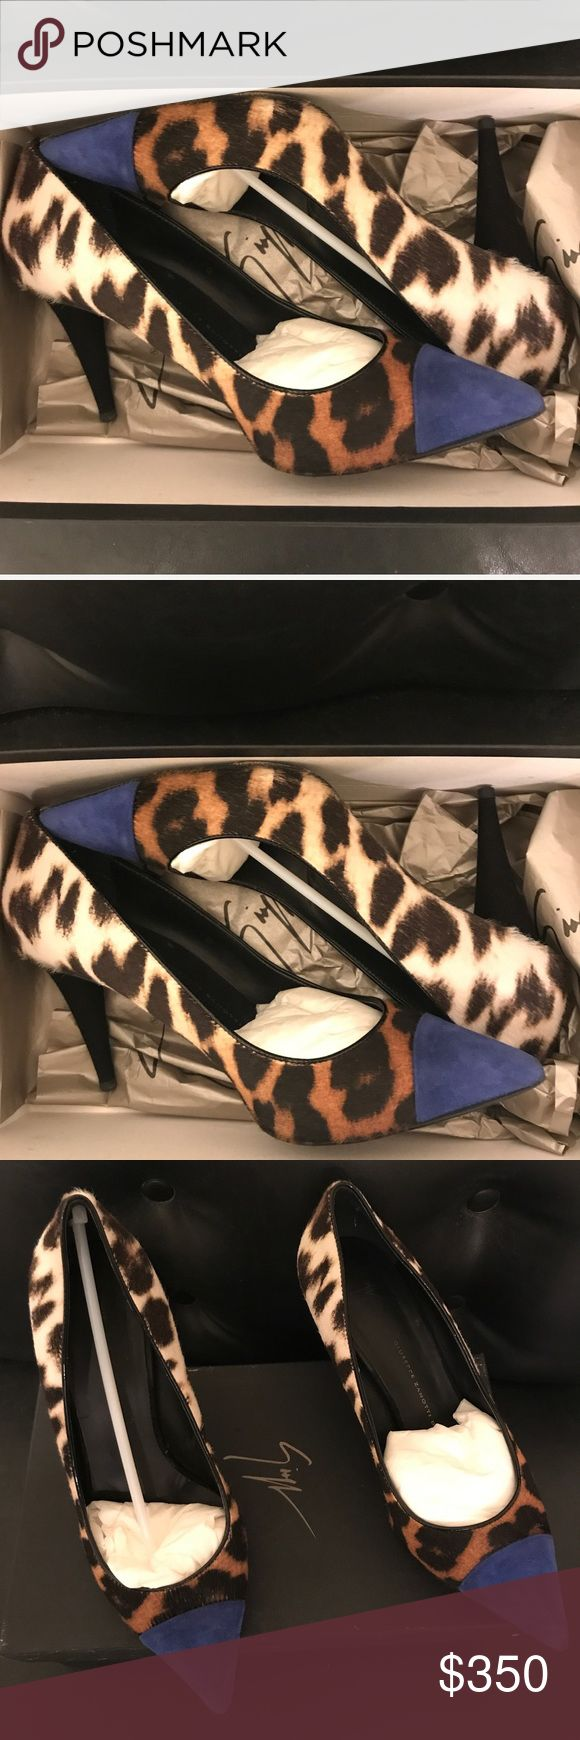 Giuseppe Zanotti Animal Print Calf Hair&Suede Pump 🔥🔥🔥🔥Authentic Giuseppe Zanotti....I've only gotten three wears out of them but received tons of compliments. Very stylish and comfortable at the same time. Giuseppe Zanotti Shoes Heels